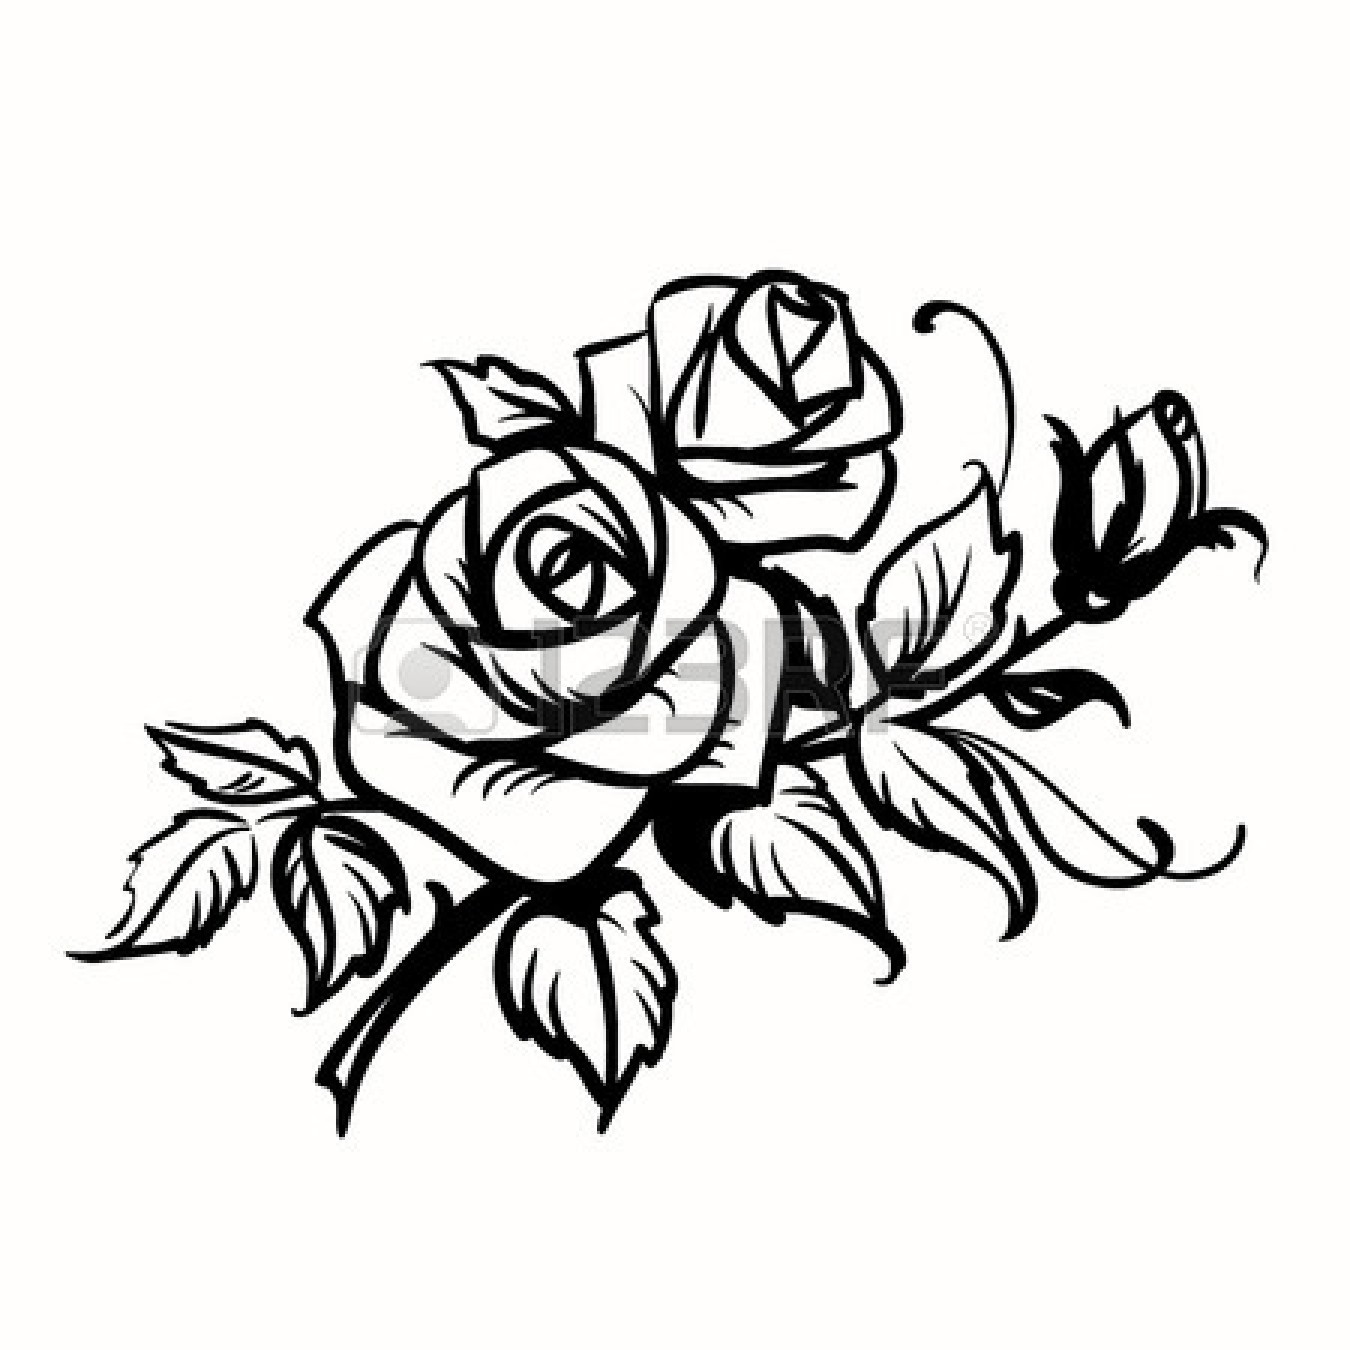 Drawn rose stem outline Rose Clip Images knumathise: Art